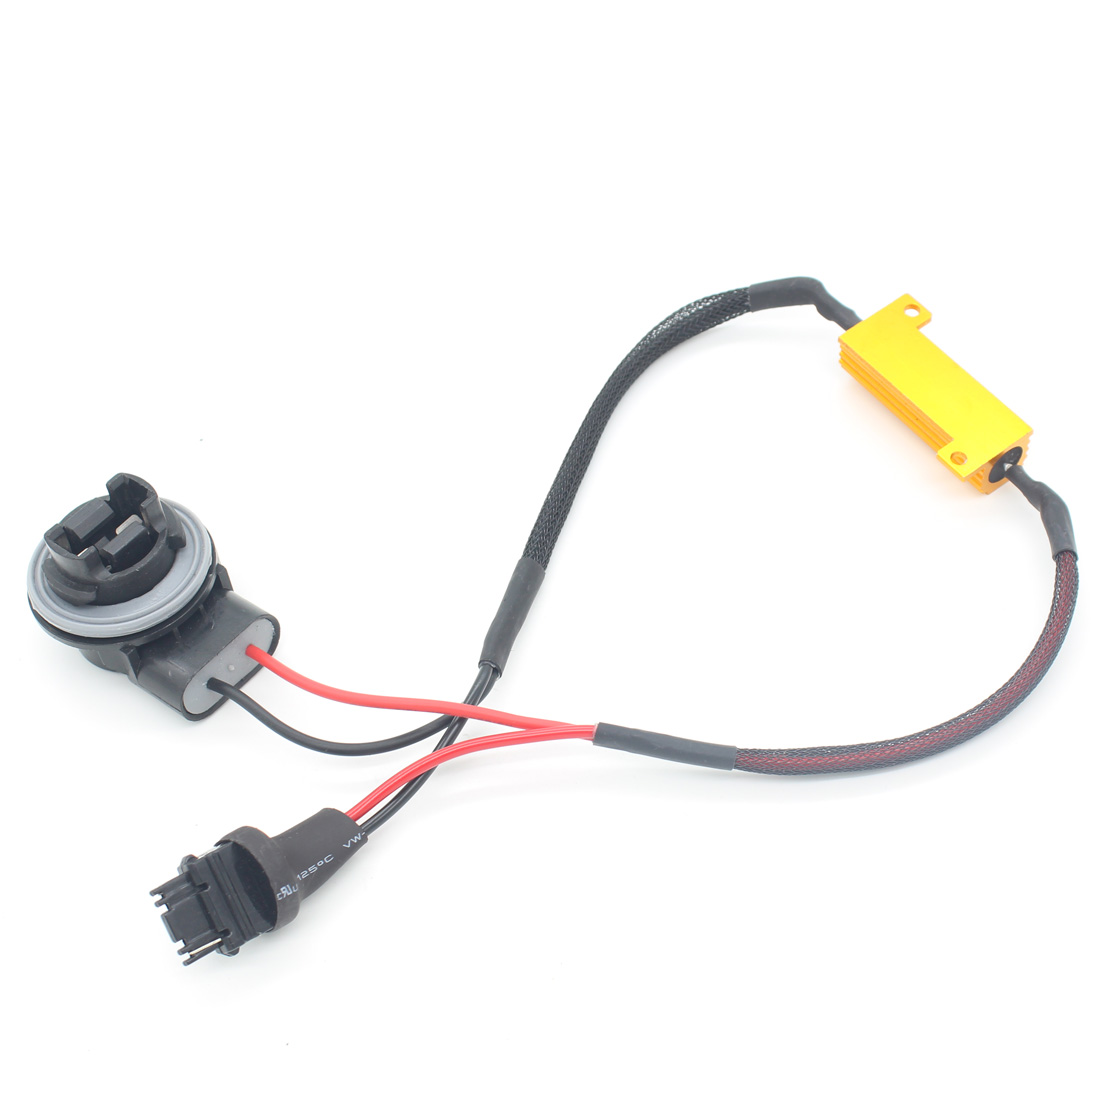 Car 3156 T25 Canbus Error Free LED Decoder Resistors Car LED Bulbs Warning Error Cancel Turn Signal For European Load Resistor ijdm amber yellow error free bau15s 7507 py21w 1156py xbd led bulbs for front turn signal lights bau15s led 12v